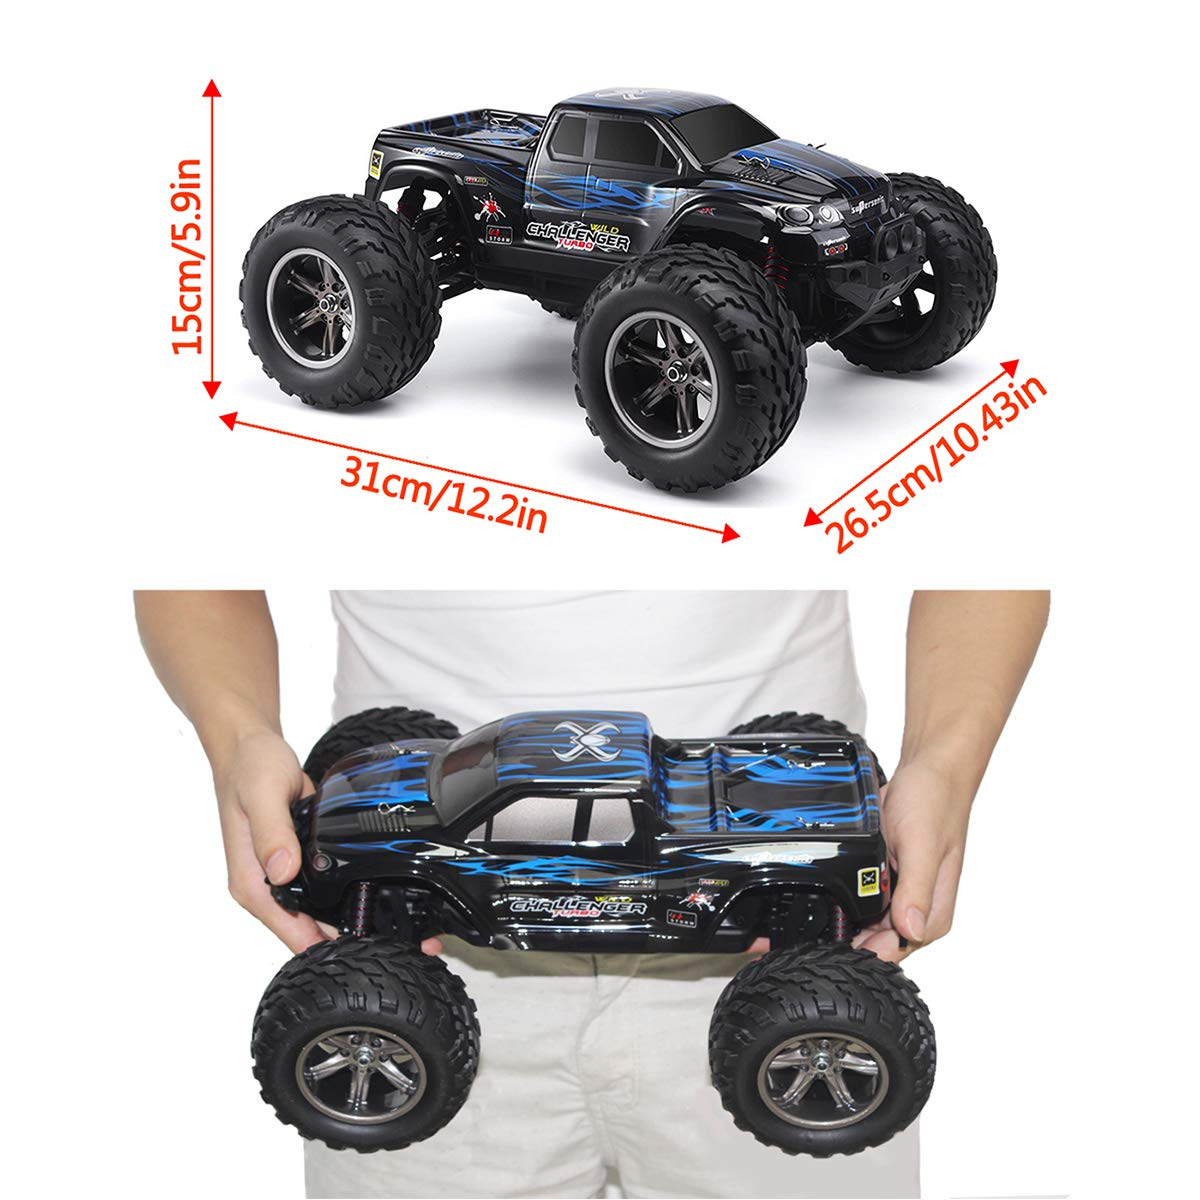 Generic 9112-Blue Offroad 2.4Ghz 2WD Remote Control Truck Best Christmas Gift for Kids and Adults Blue 38km//h 1//12 Scale Radio Controlled Electric Car Hosim All Terrain RC Car 9112